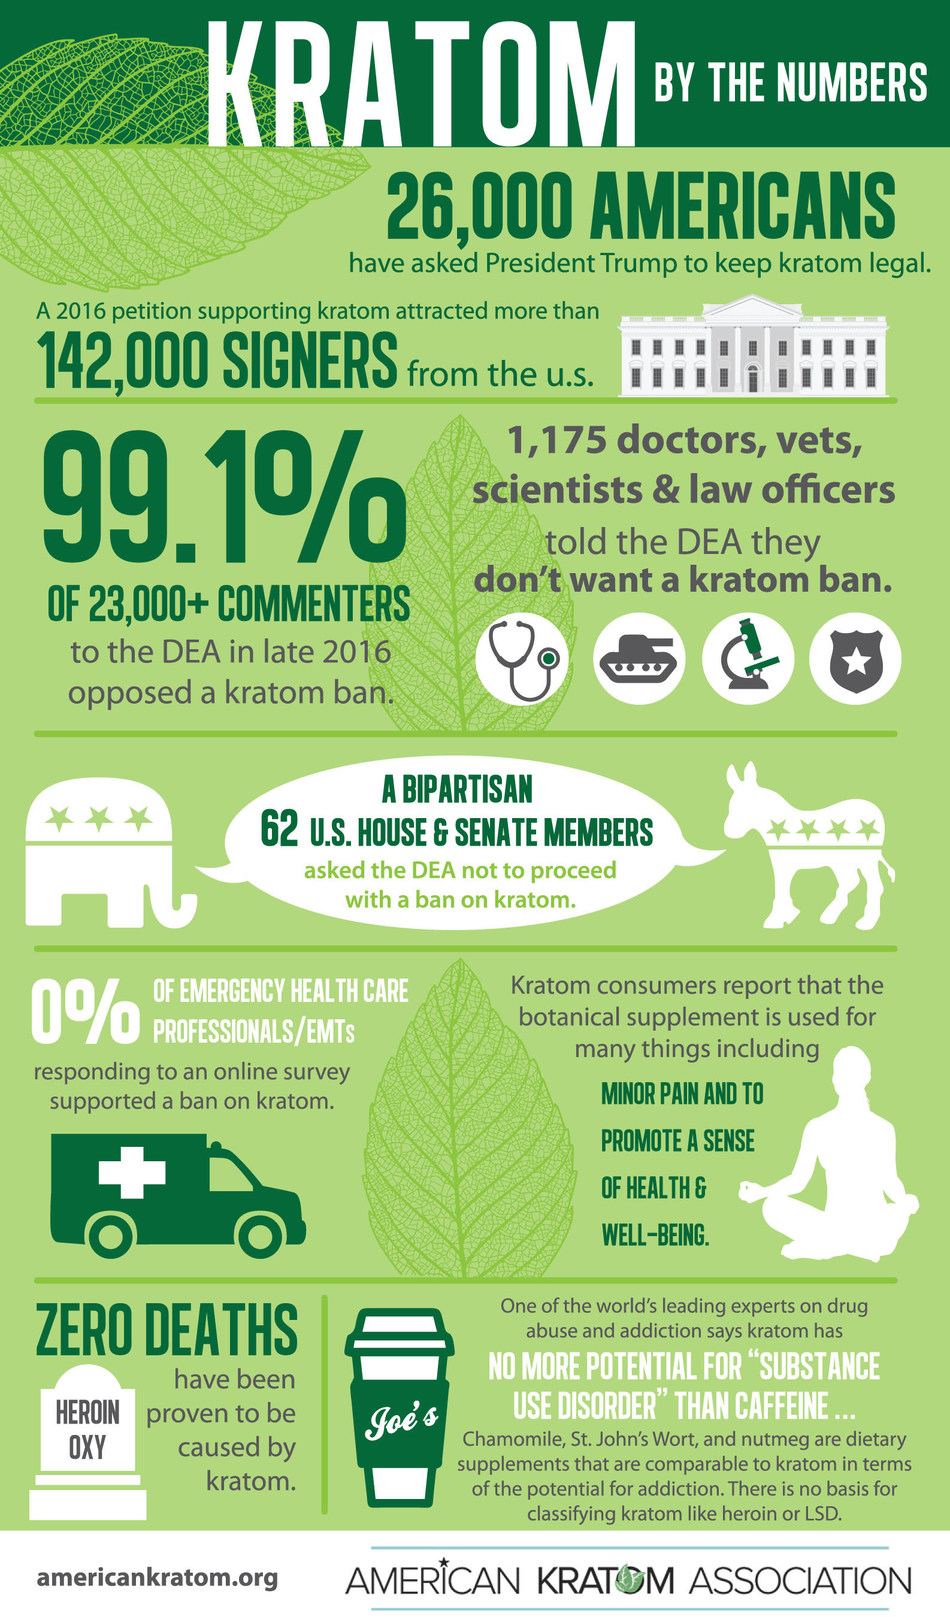 The American Kratom Association issued this fact-versus-fiction infographic debunking a number of unscientific attacks on the coffee-like botanical kratom, which is no more addictive than nutmeg.